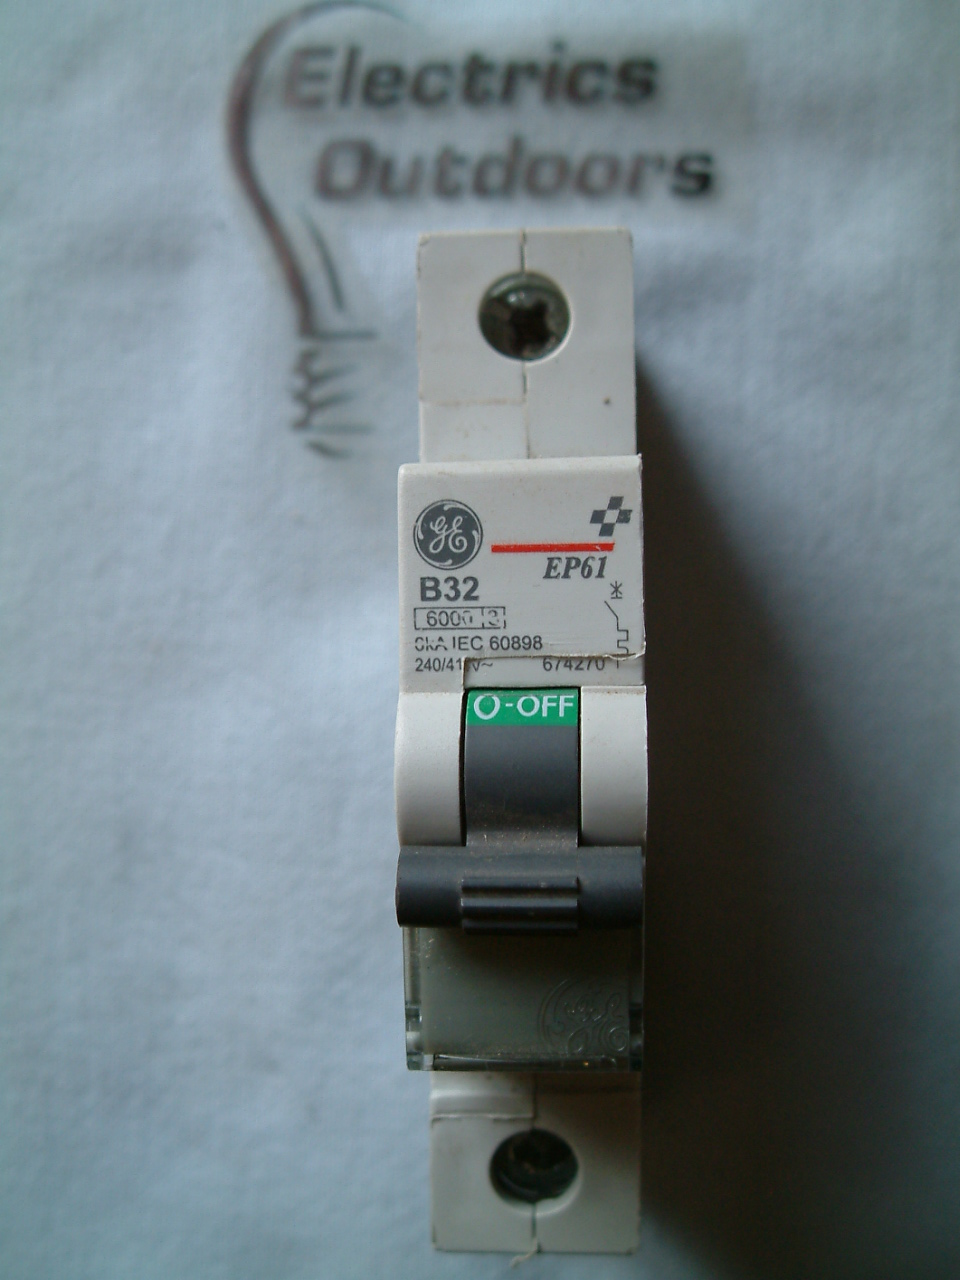 GENERAL ELECTRIC 32 AMP TYPE B 6 kA MCB CIRCUIT BREAKER EP61 674270